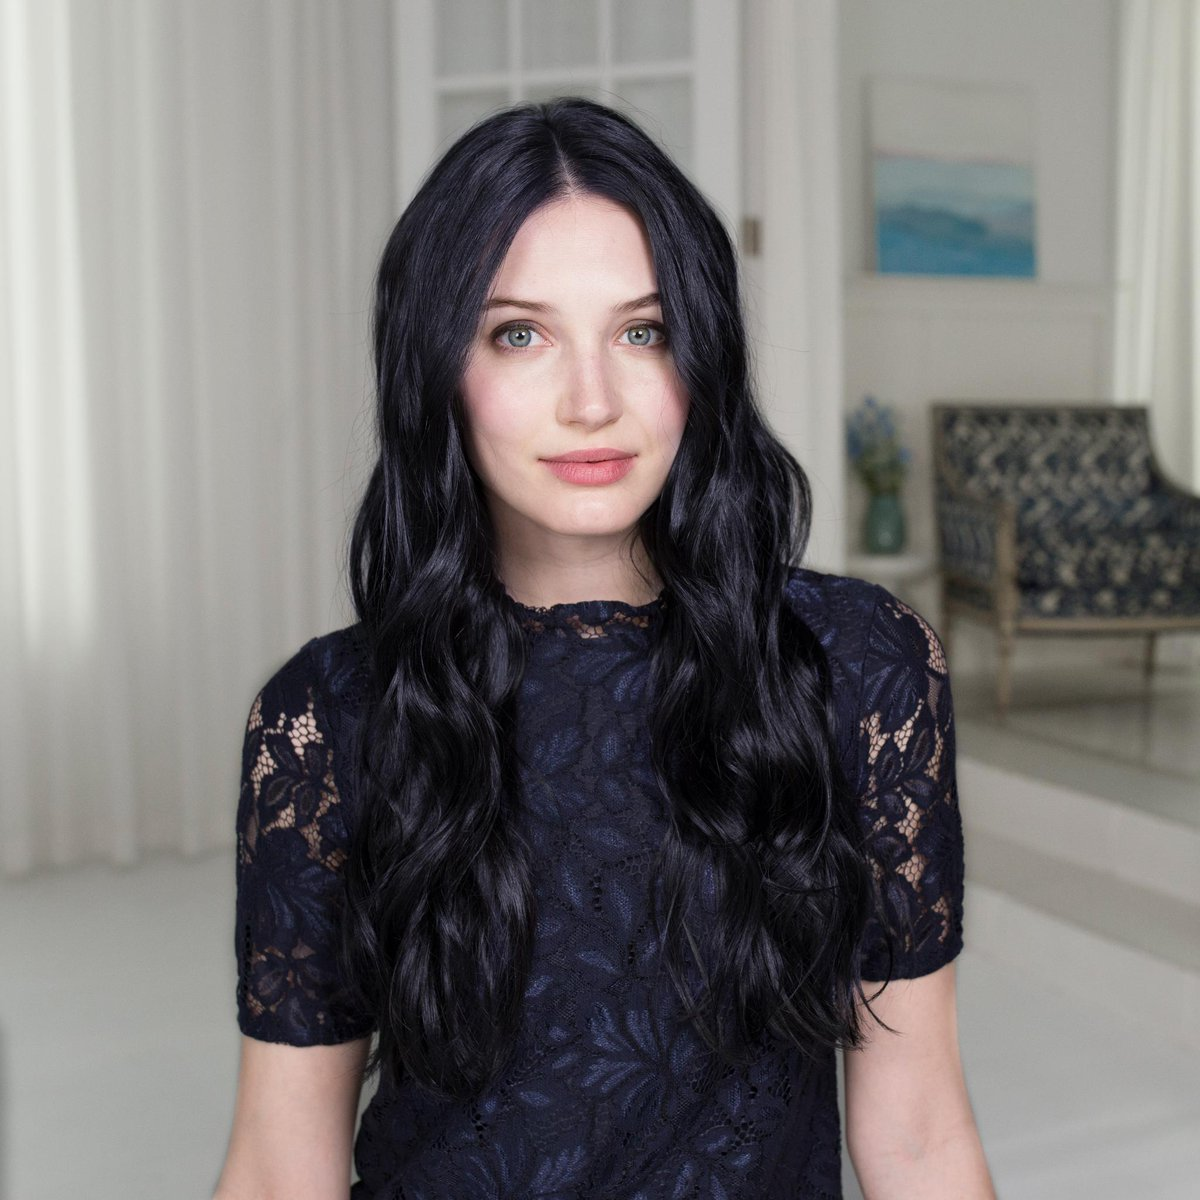 Garnier Usa On Twitter Mood Switching Our Haircolor To This